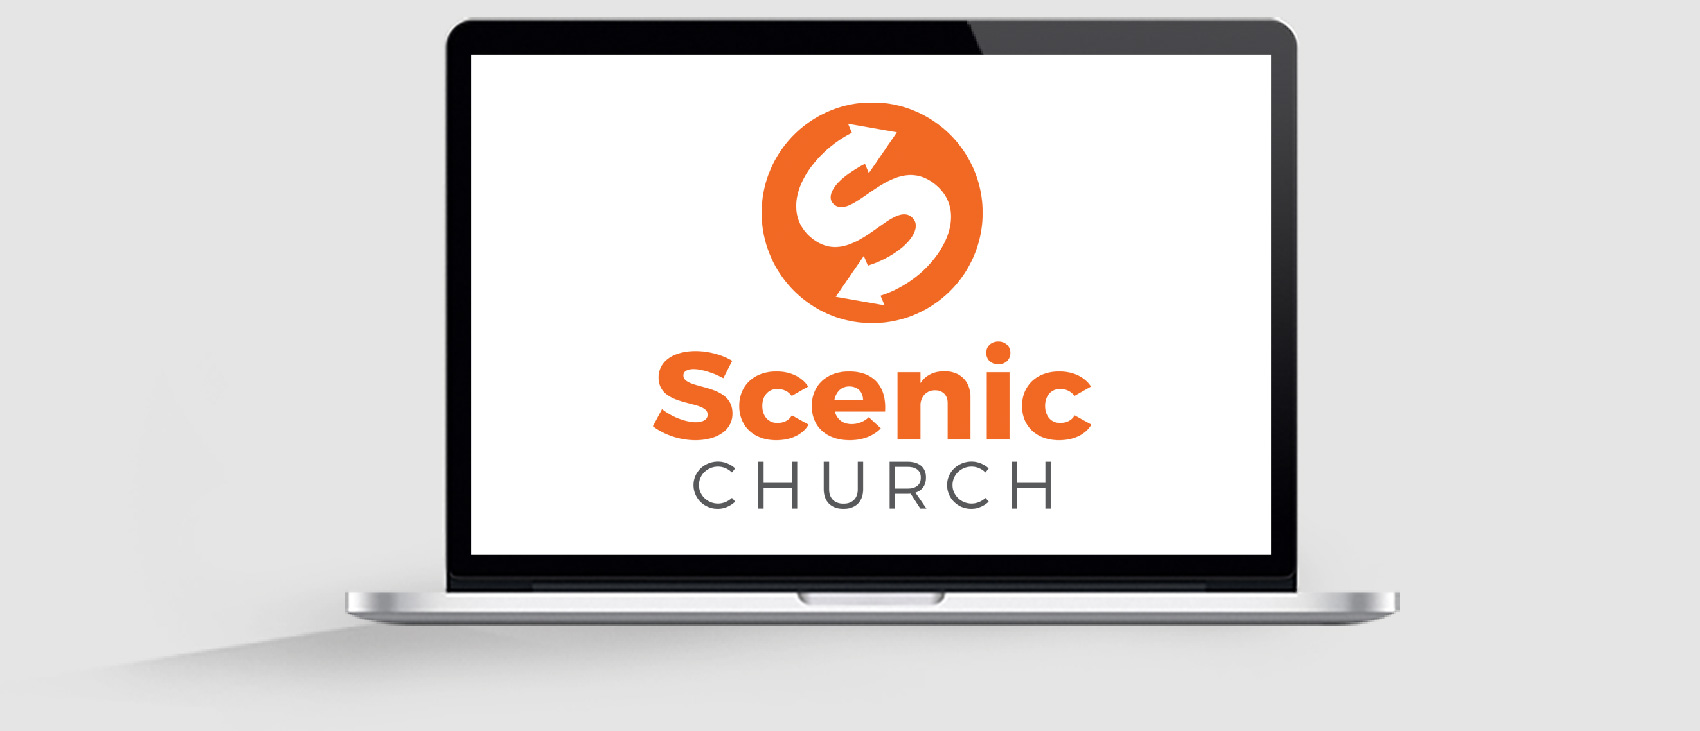 scenic church logo